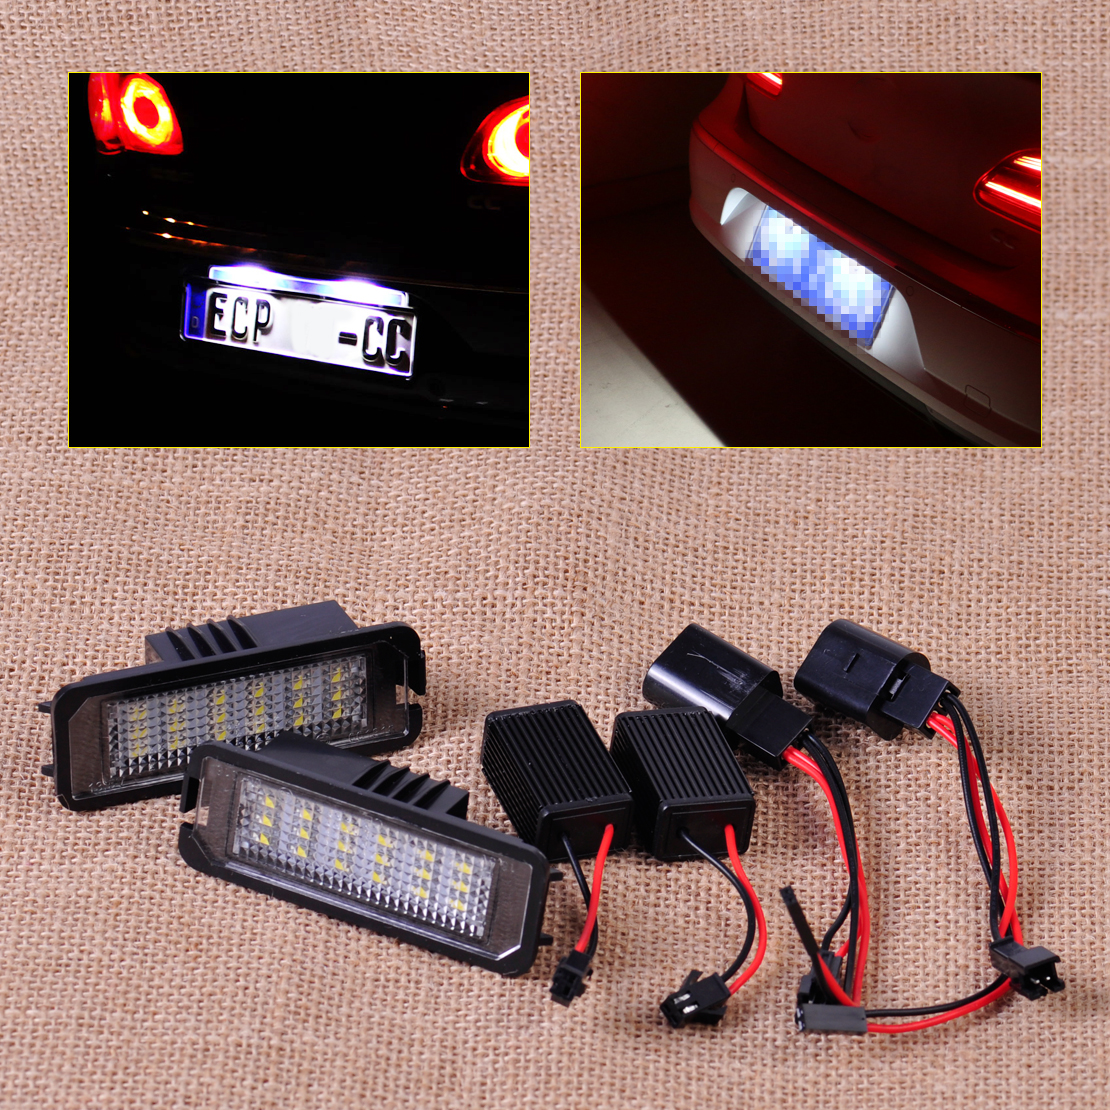 CITALL 2pcs White Error Free 18 LED License Plate Light Lamp Kit for VW Golf MK4 MK5 MK6 Eos Passat New Beetle Polo Phaeton Lupo  2x error free led license plate light for volkswagen vw passat 5d passat r36 08